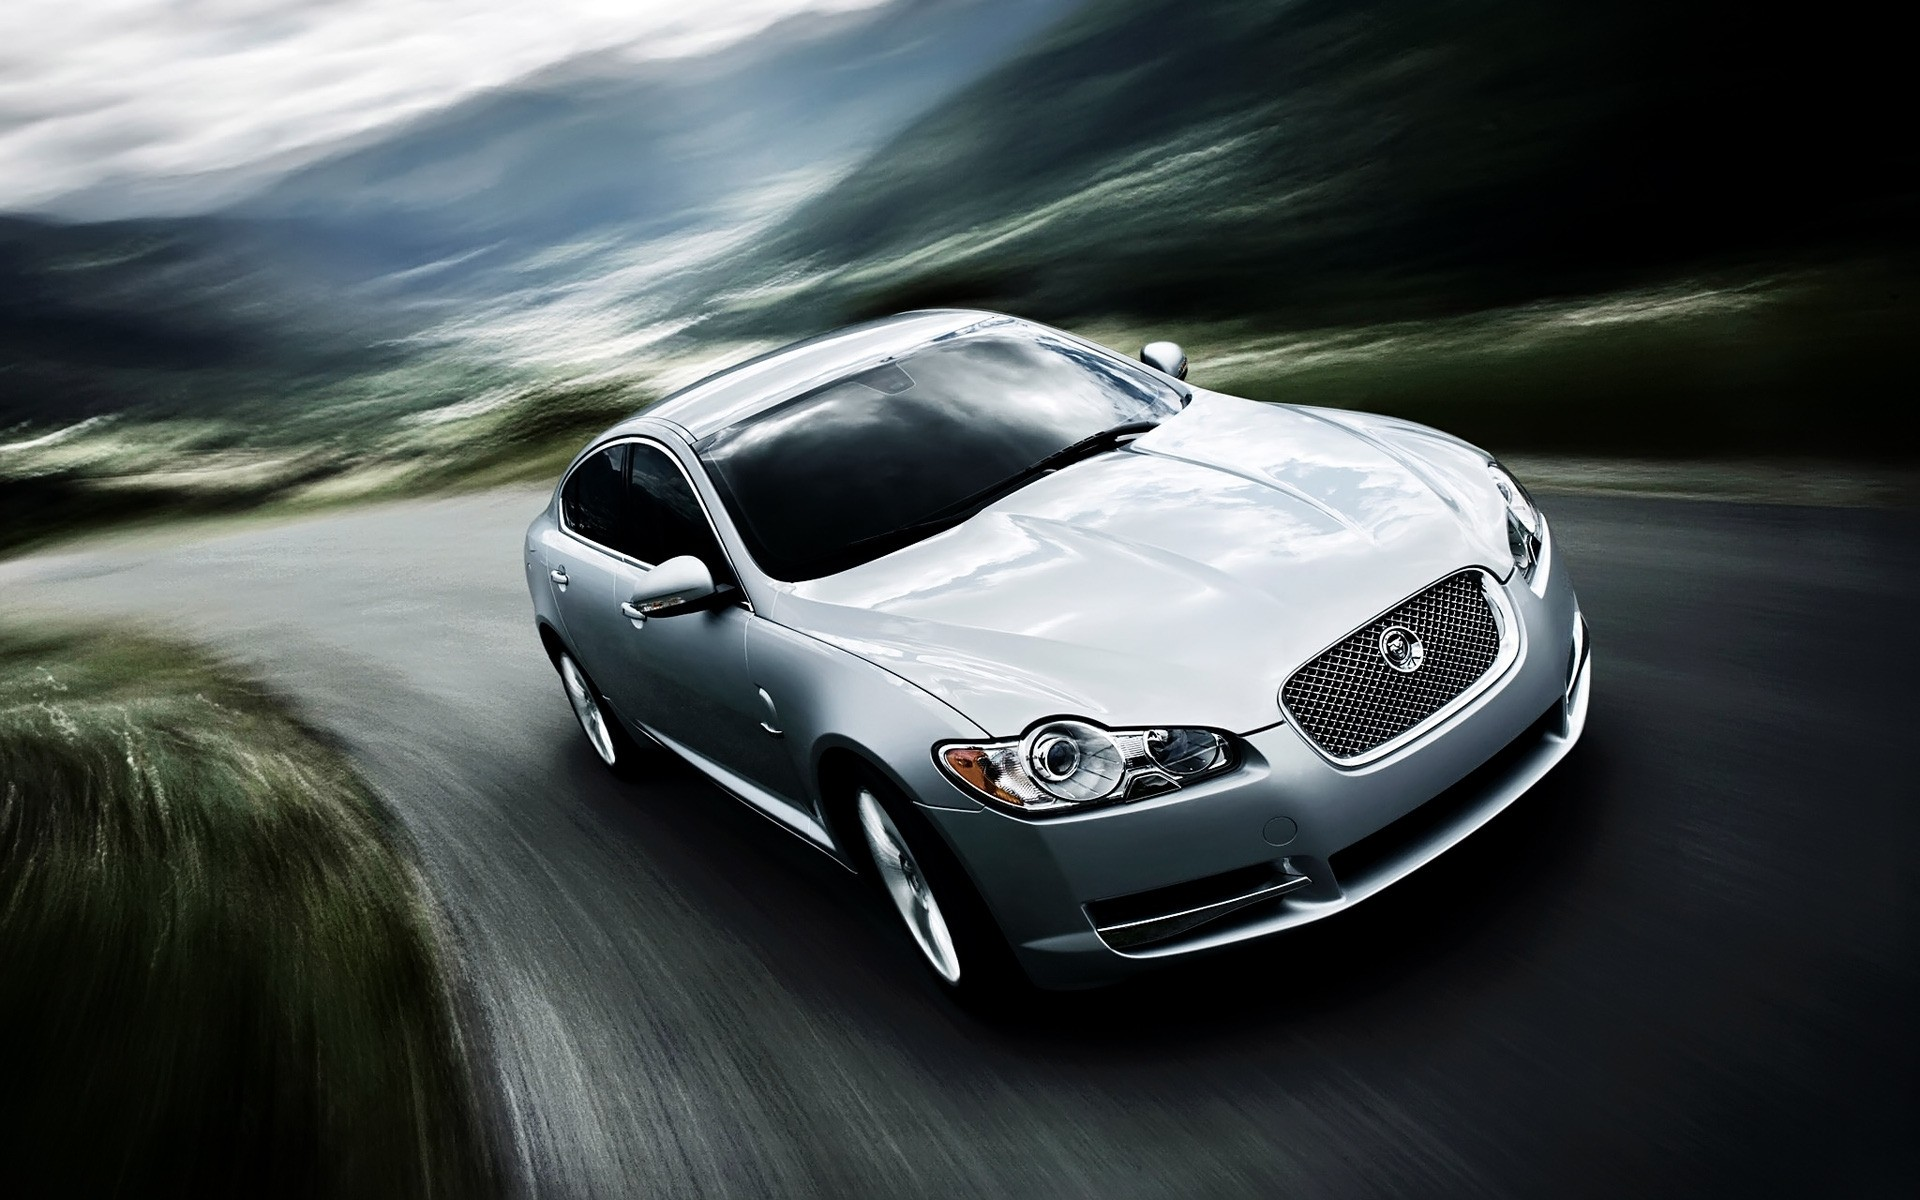 jaguar car vehicle fast hurry transportation system asphalt pavement wheel automotive drive blacktop jaguar xf